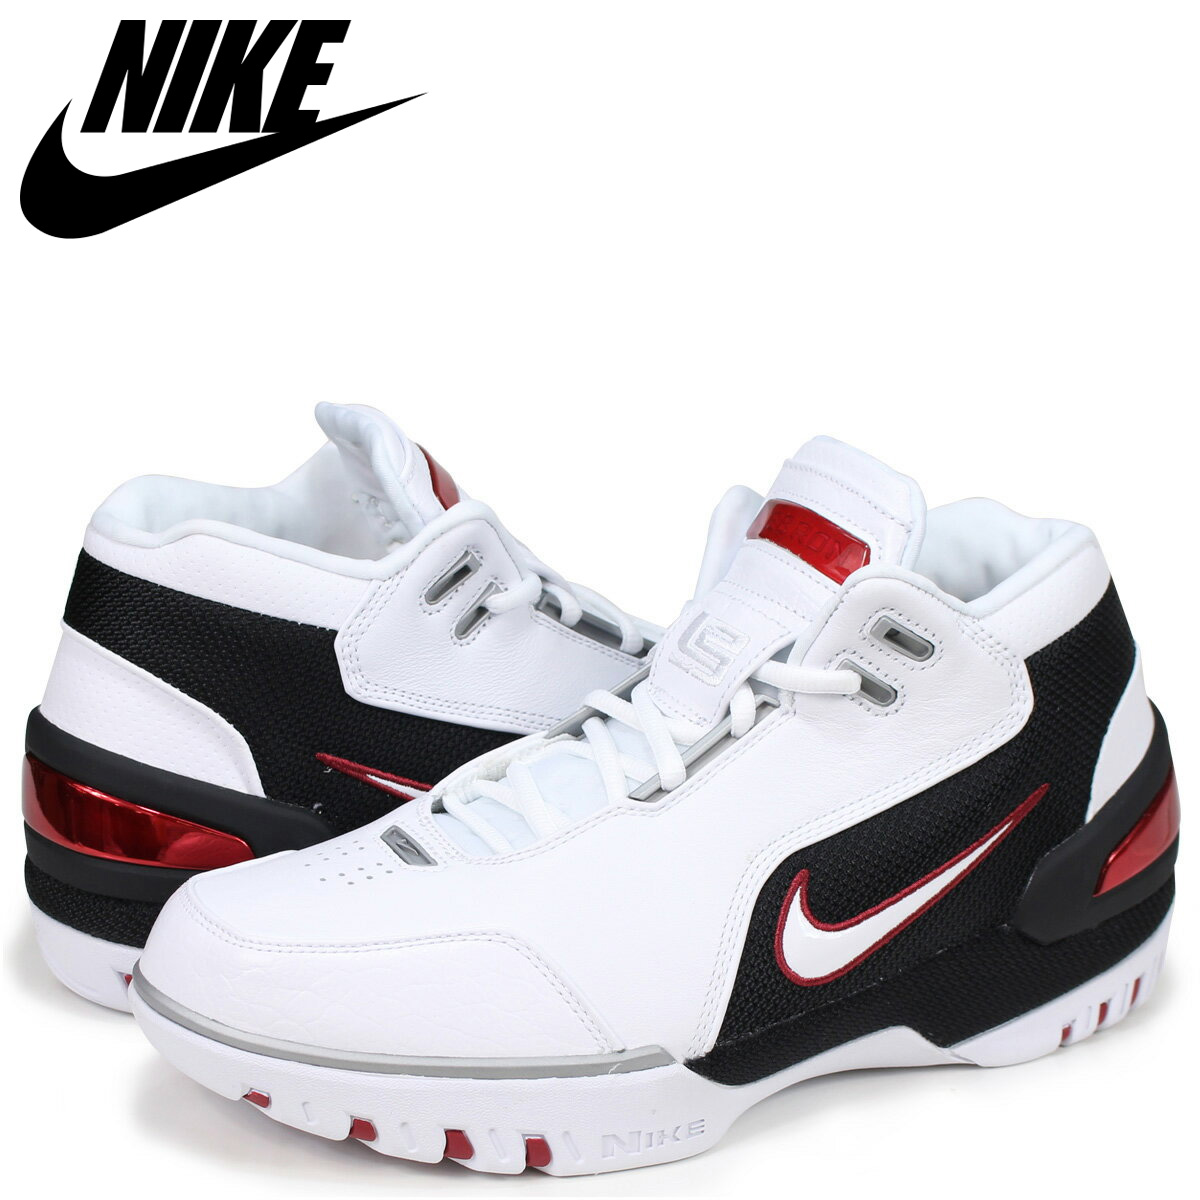 100% authentic 6733b 7df64 NIKE Nike air zoom generation sneakers men AIR ZOOM GENERATION AJ4204-101  white